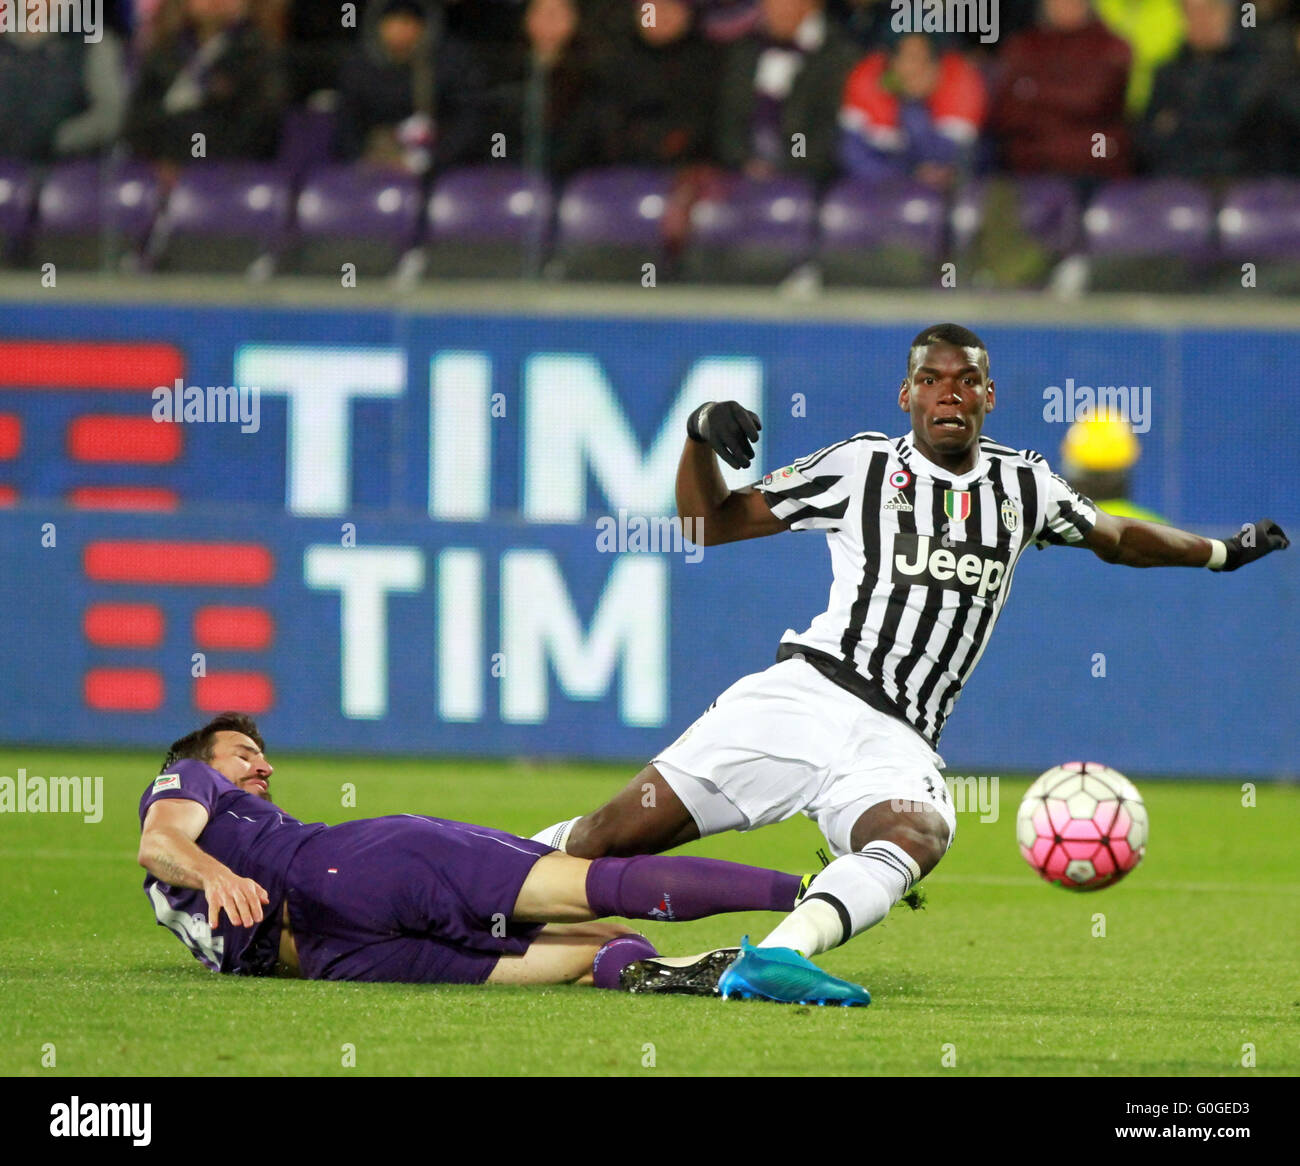 ITALY, Florence: Juventus's midfielder Paul Pogba fall down by Fiorentina's defender Nenad Tomovic (L) during - Stock Image